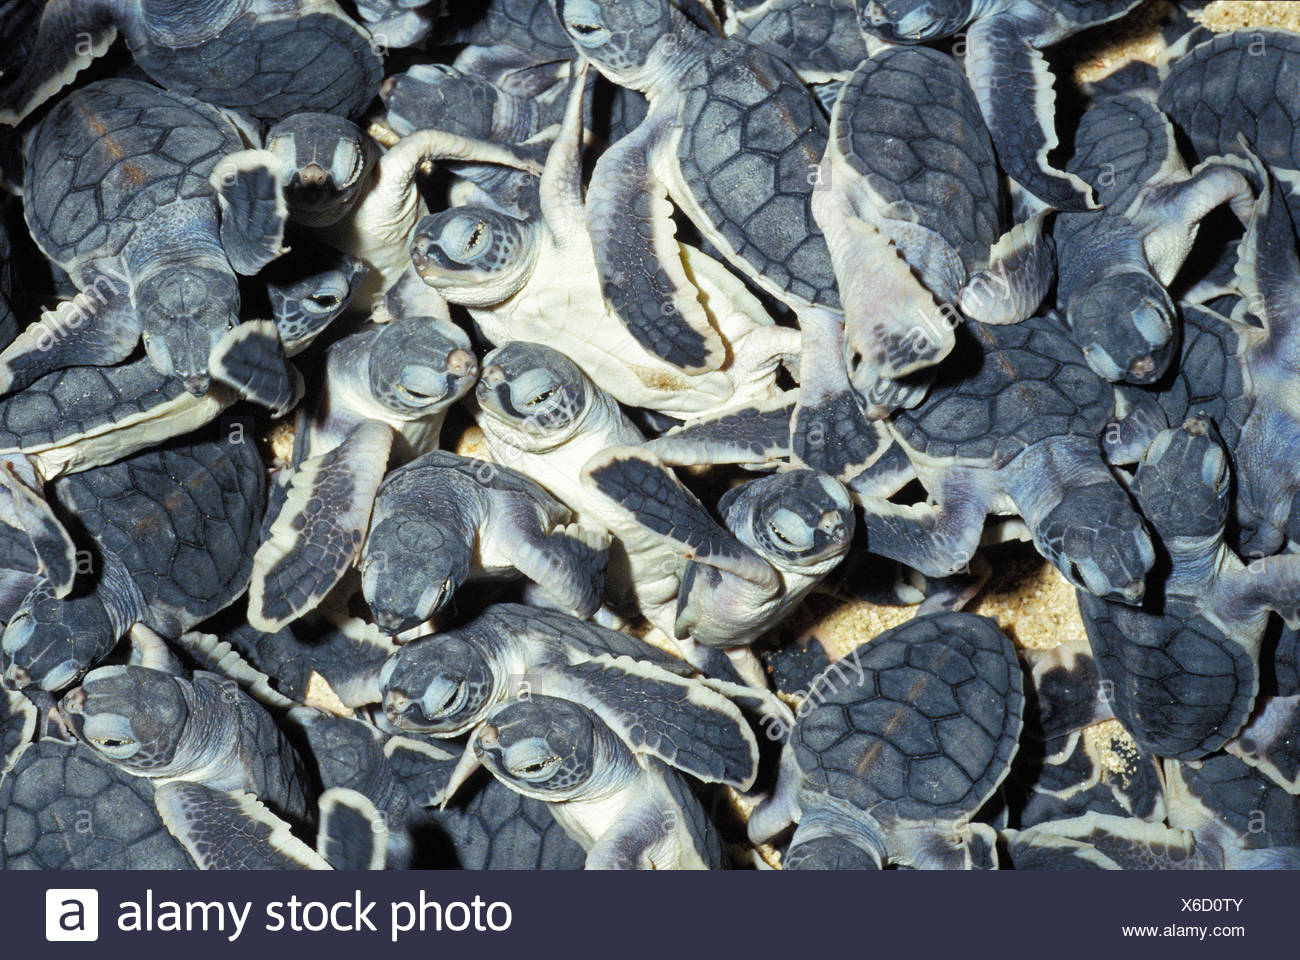 GREEN SEA TURTLE chelonia mydas, BABIES IN HATCHERY, MALAISIA - Stock Image